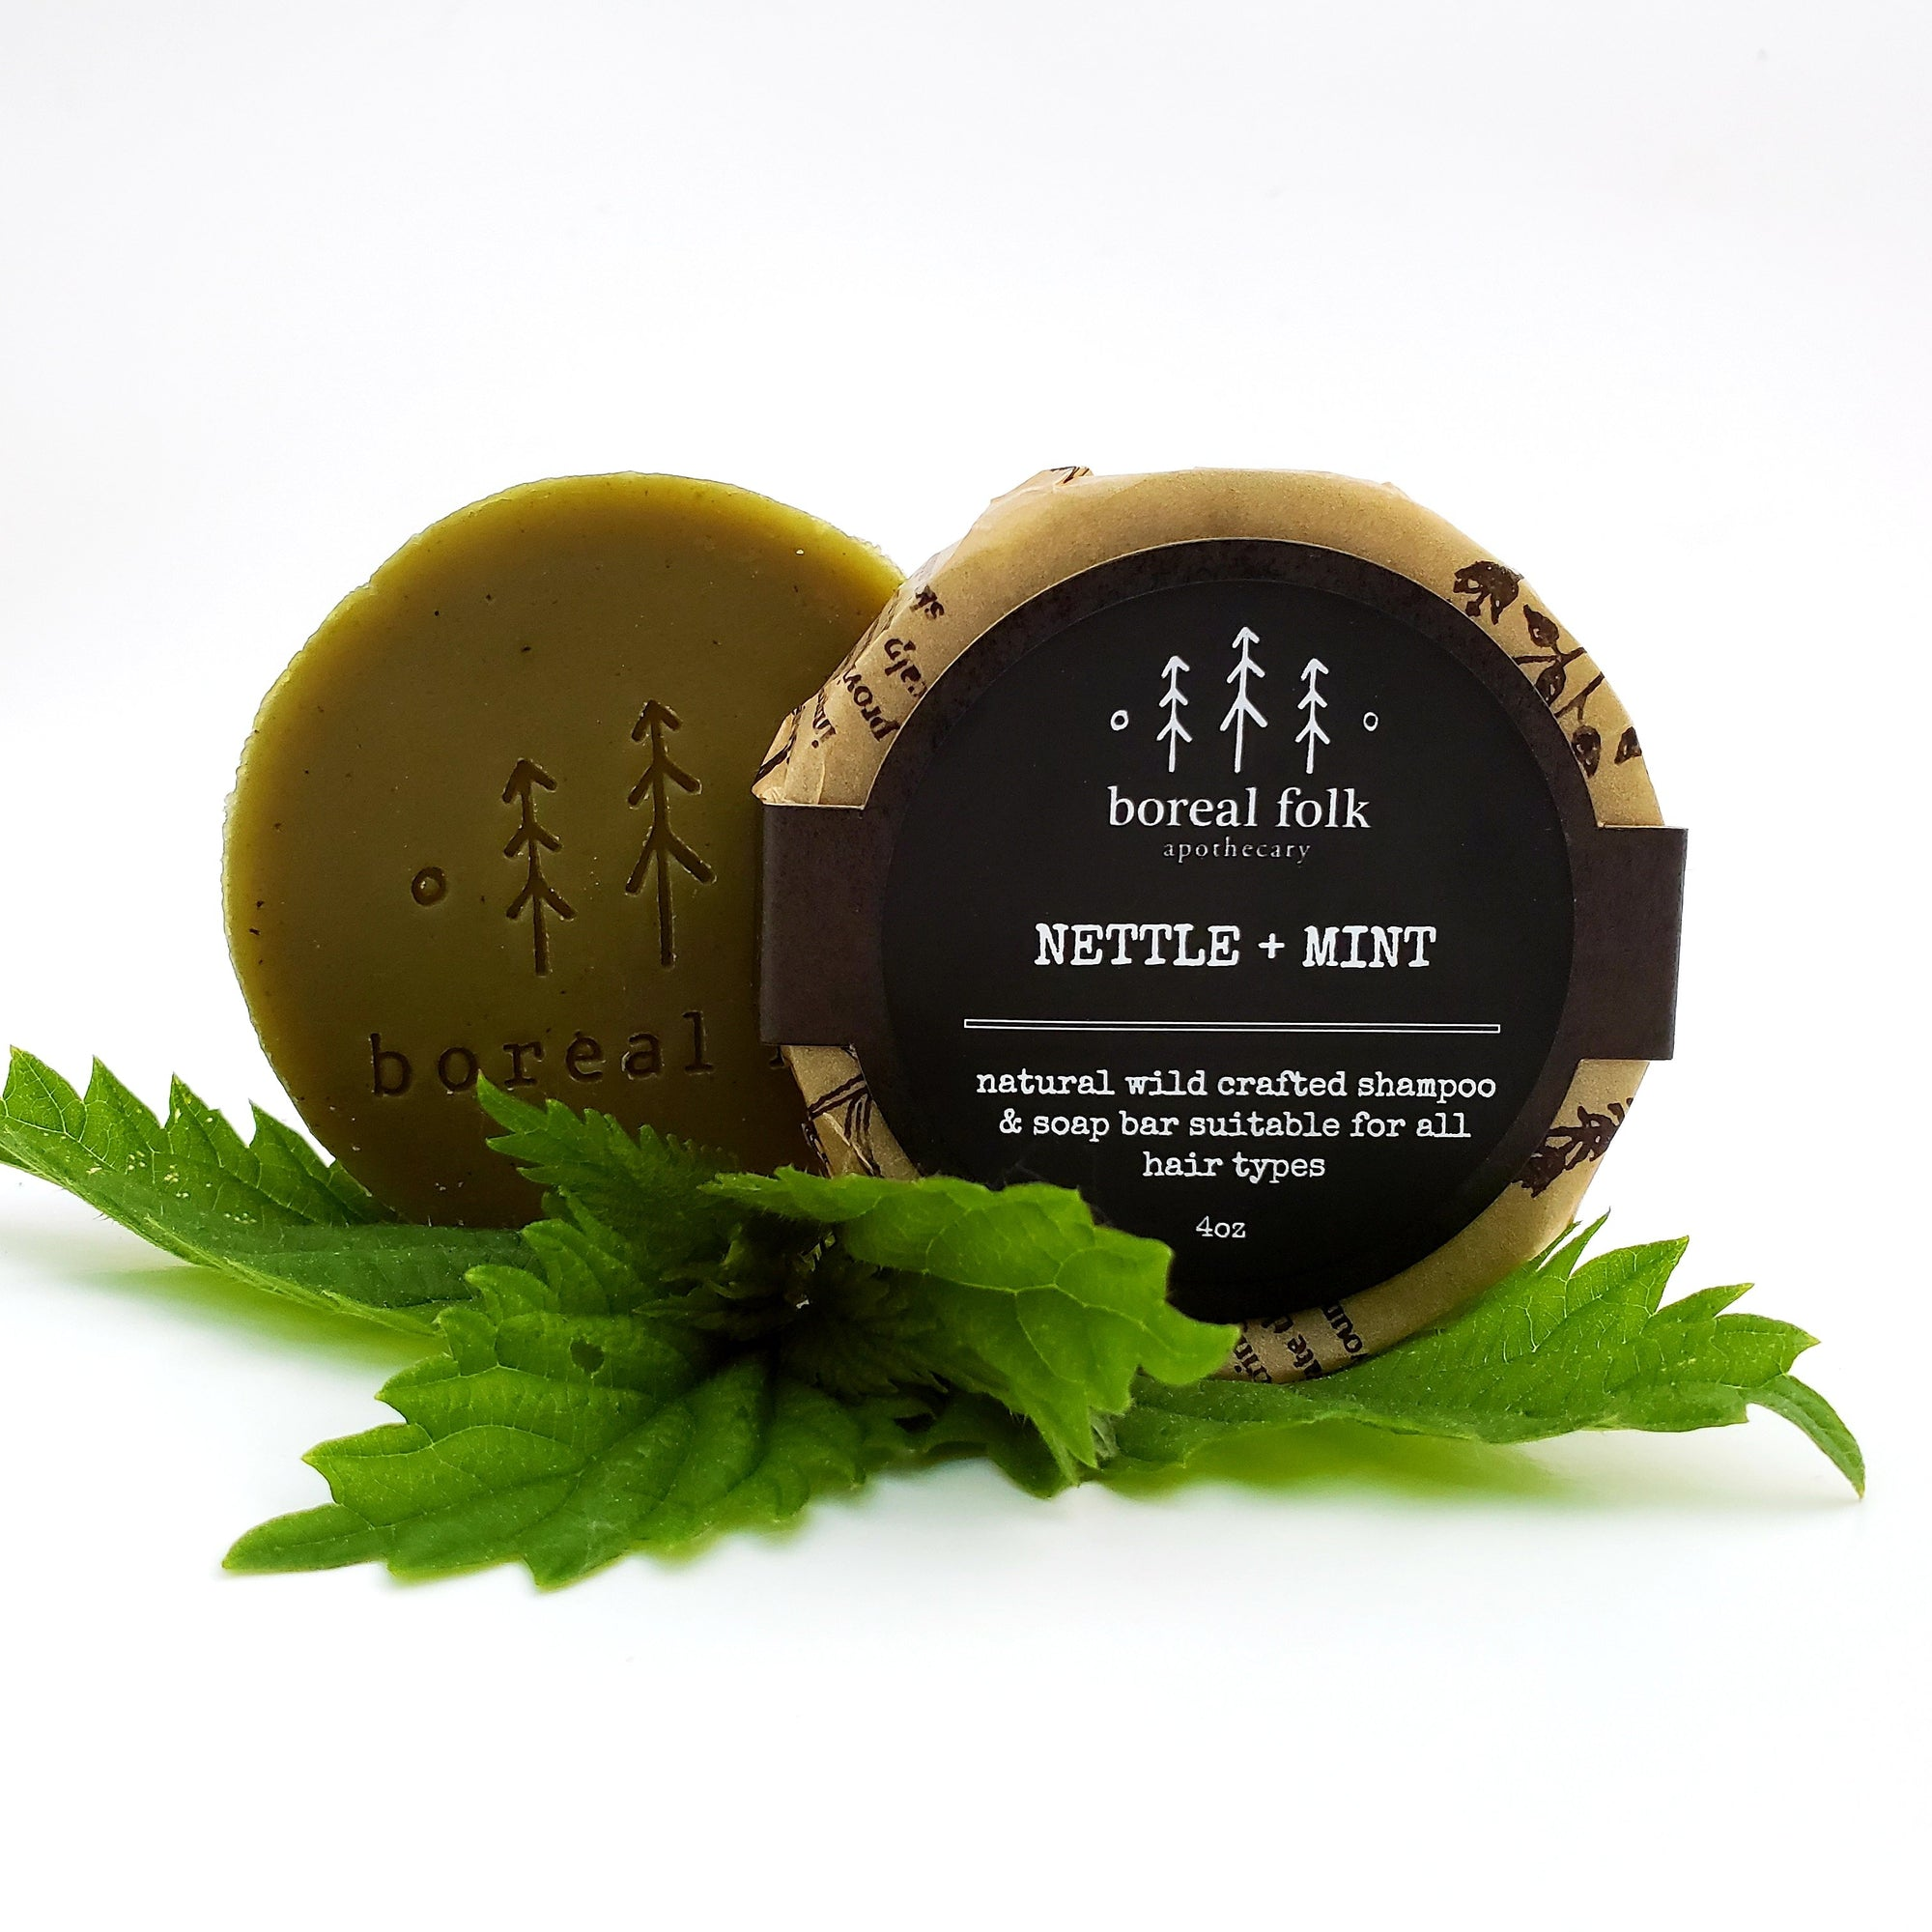 Nettle + Mint Soap/Shampoo Bar